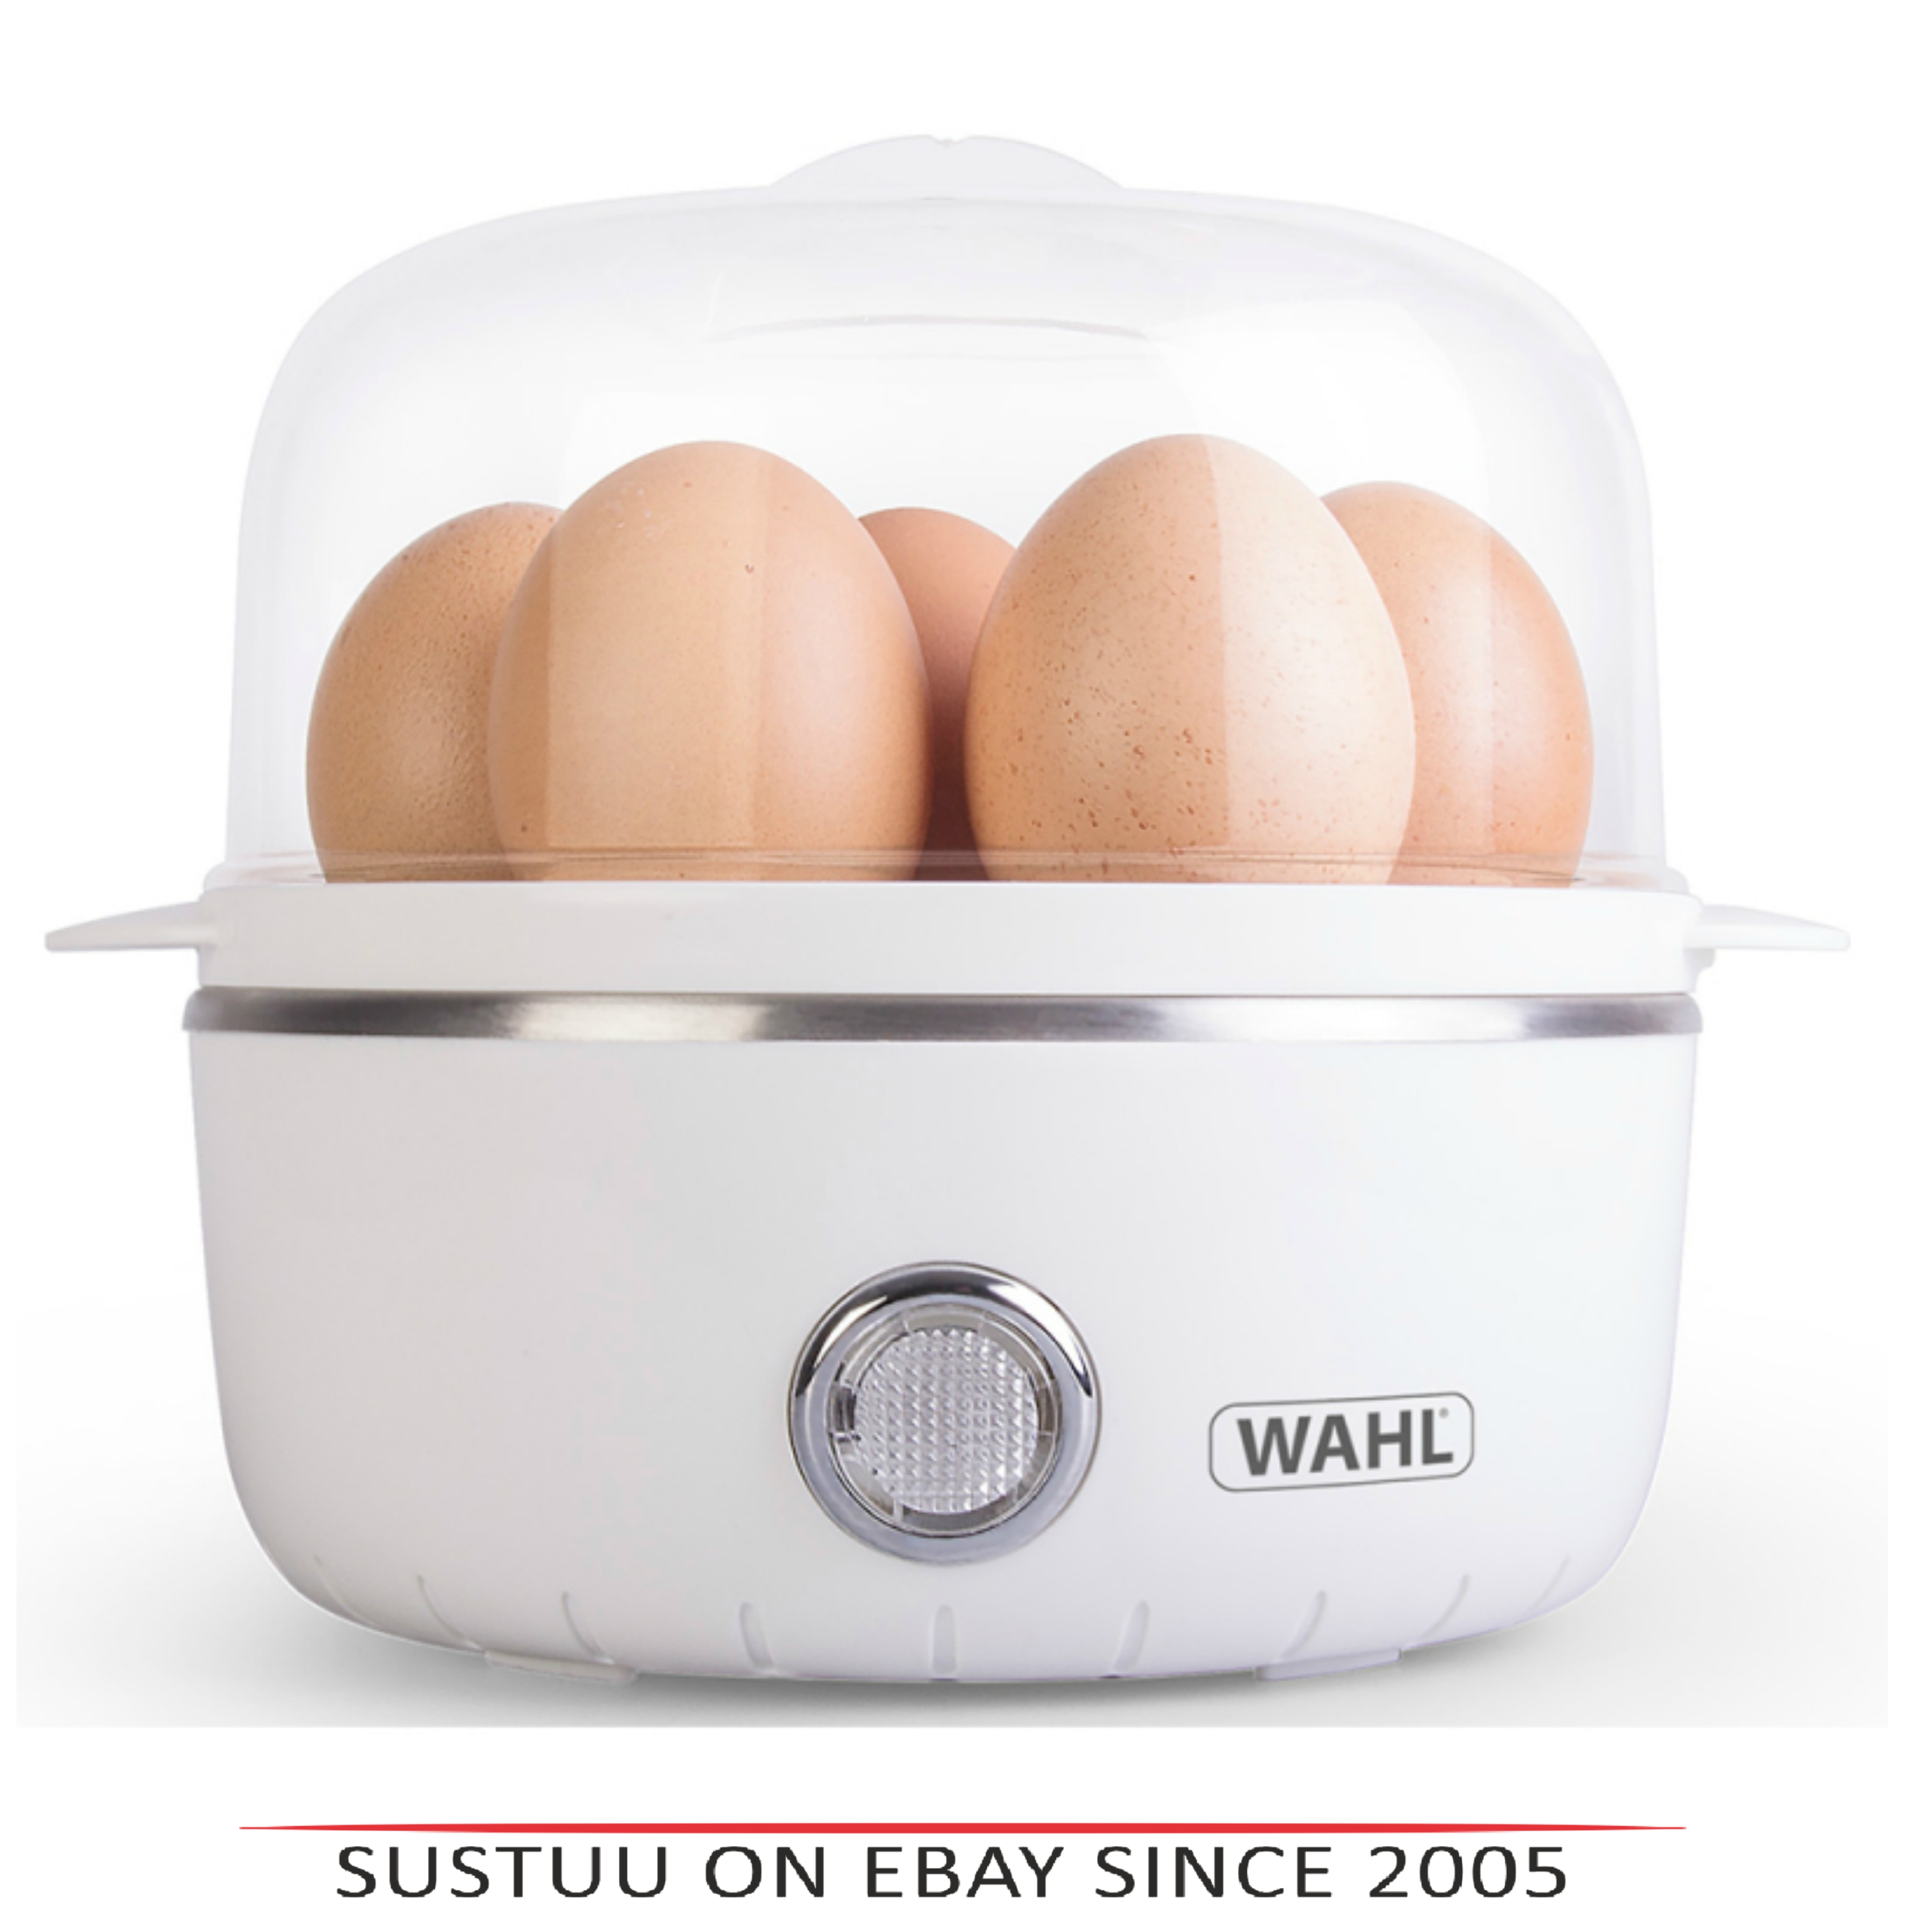 Wahl ZX945 Non Stick Electric Egg Boiler & Poacher|Hard to Soft Boiled|White|New